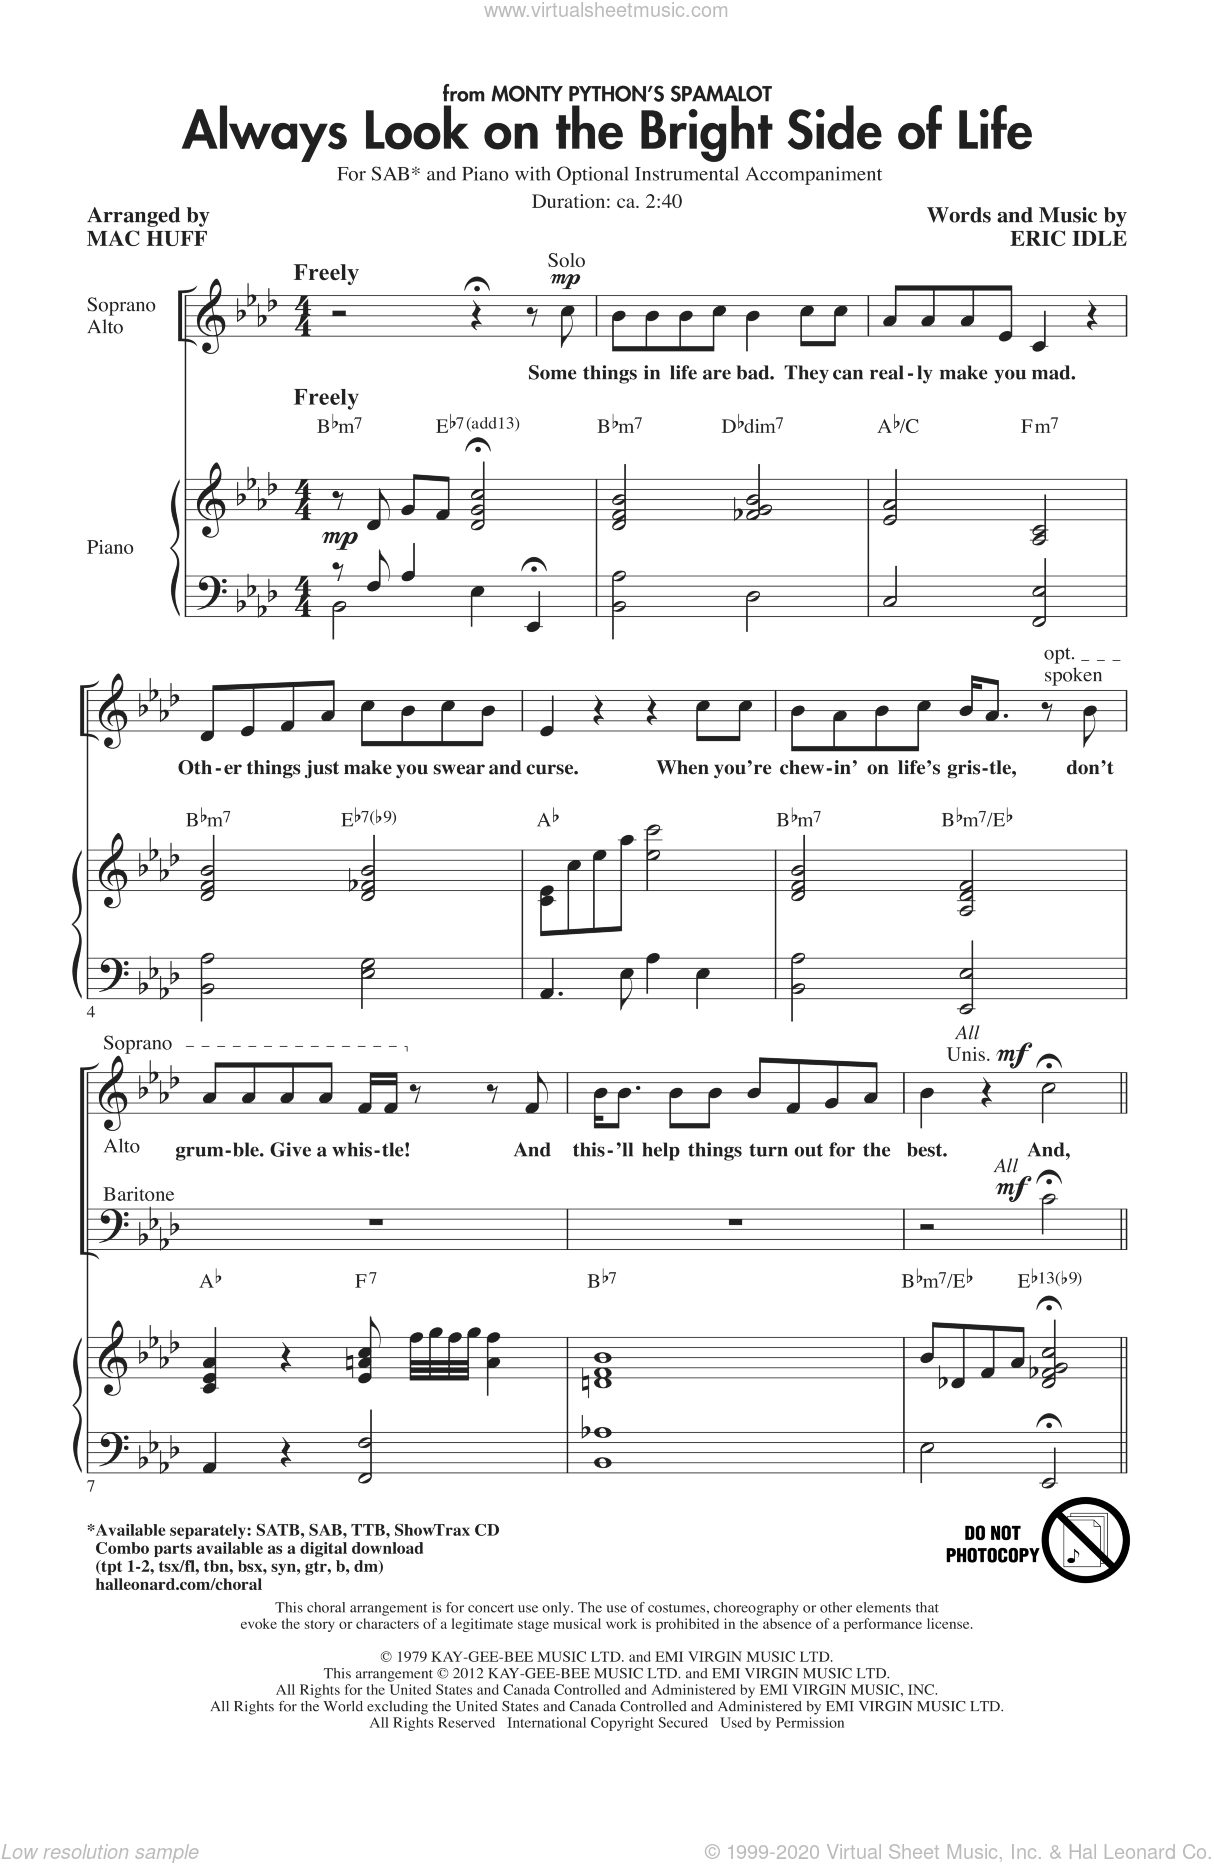 Always Look On The Bright Side Of Life sheet music for choir and piano (SAB) by Eric Idle